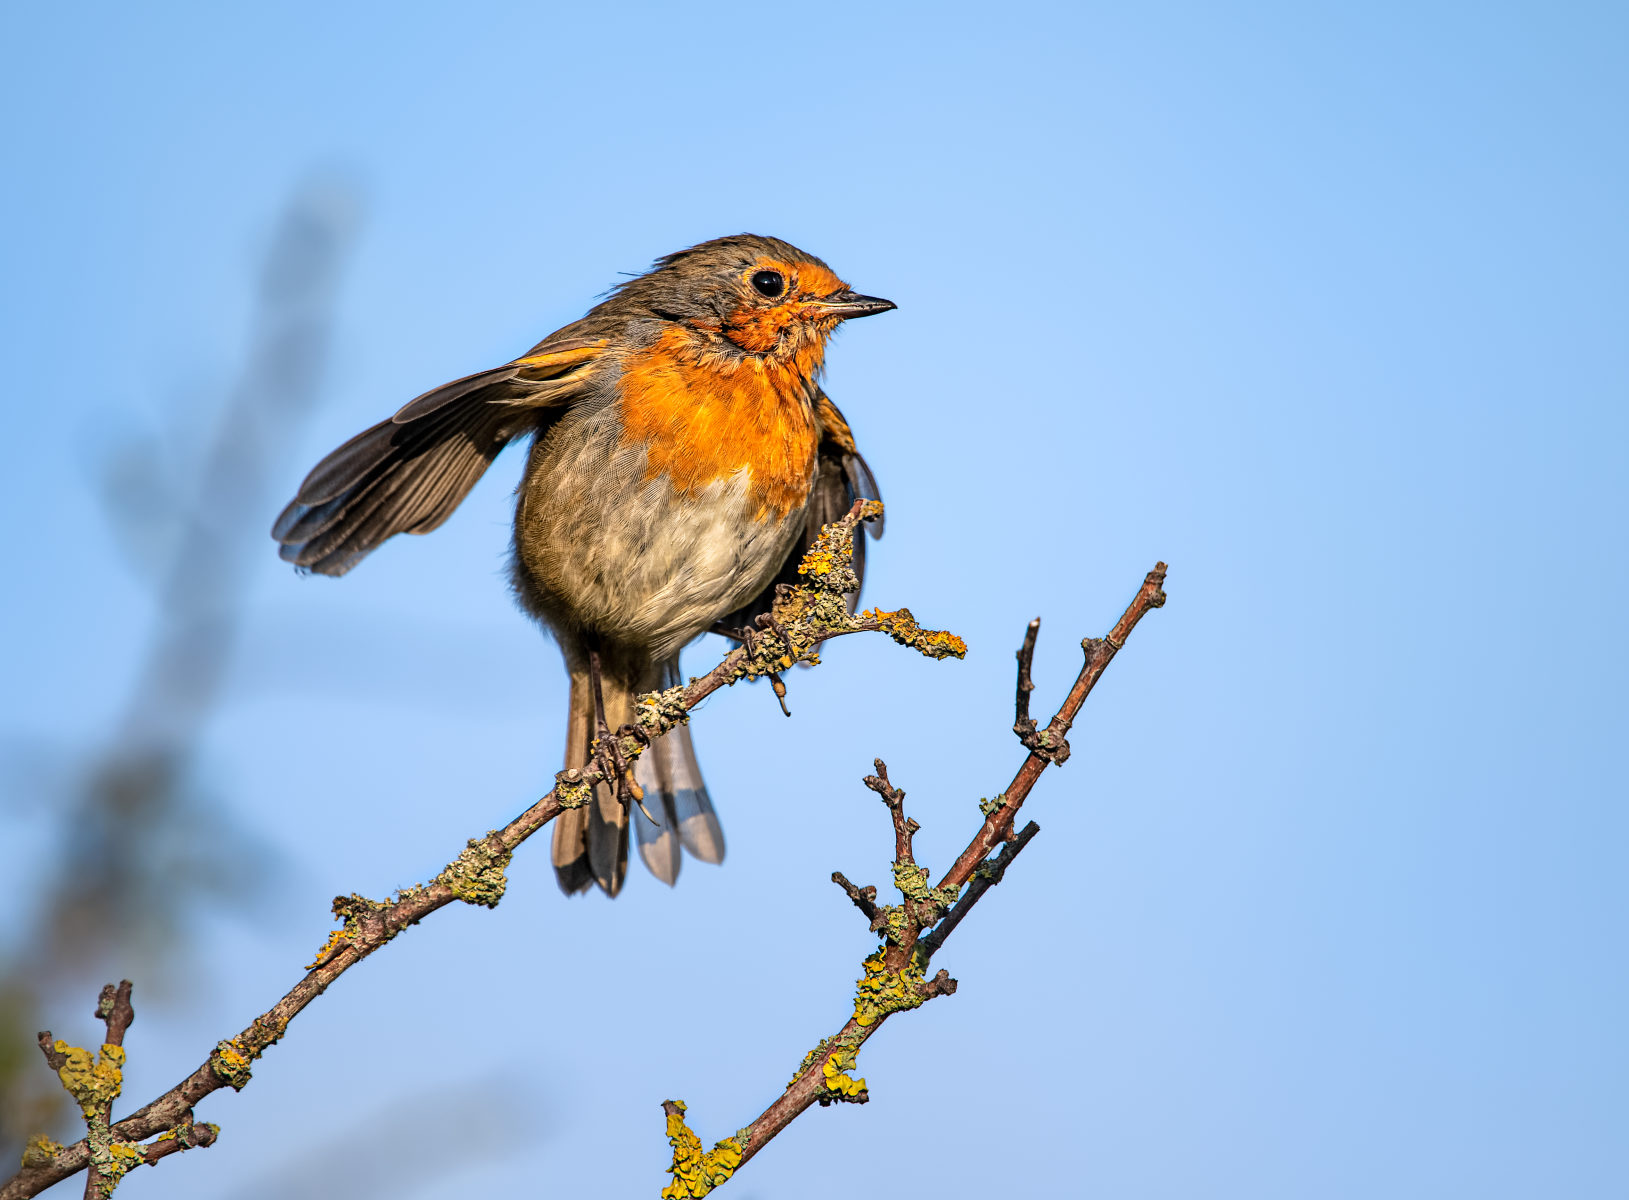 robin on branch spreading its wings